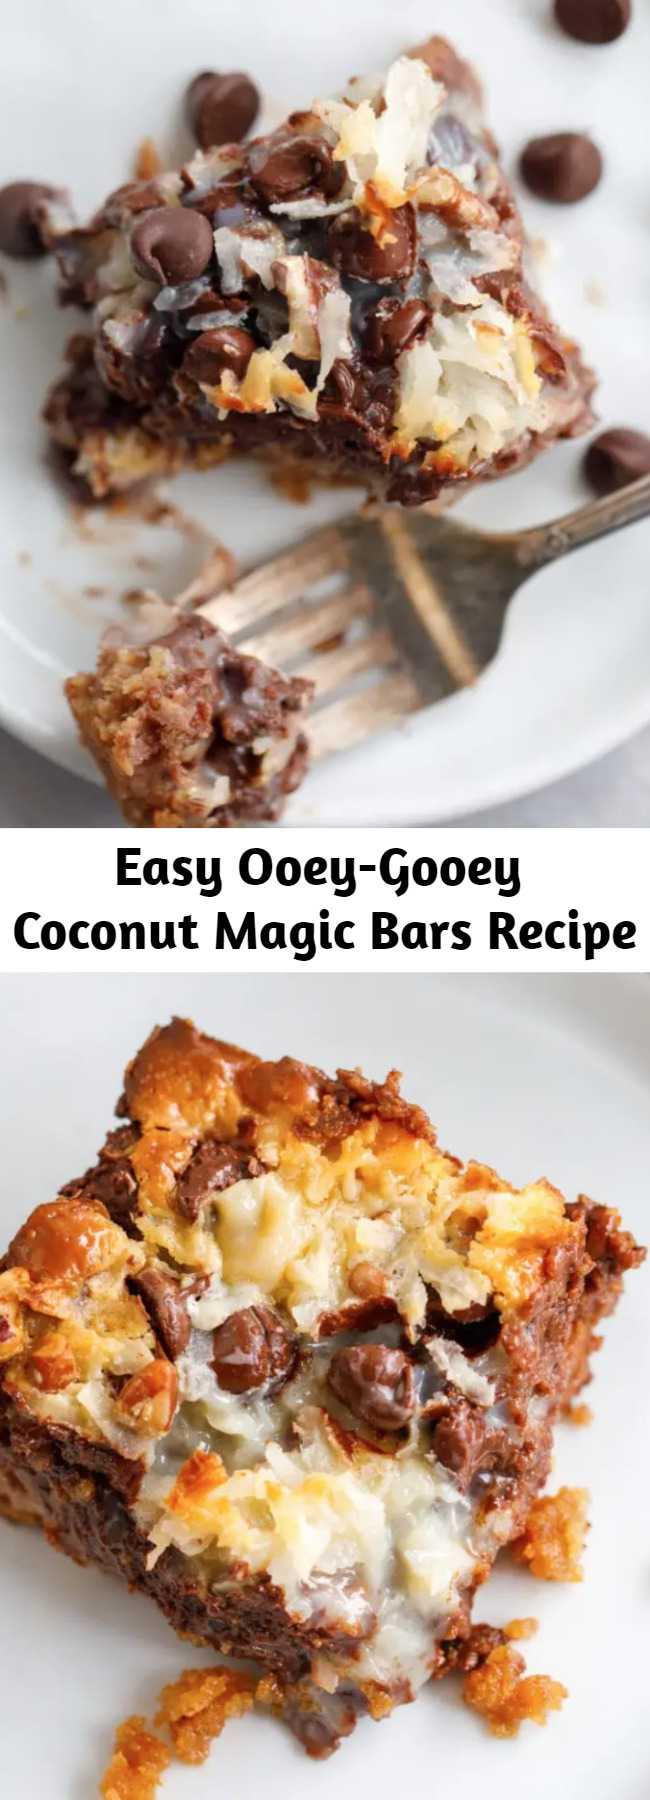 Easy Ooey-Gooey Coconut Magic Bars Recipe - These coconut magic bars are so easy to make that it's almost funny. It doesn't seem like something so TASTY could result from layering a few ingredients in a baking dish. Y'all, these coconut magic bars are like HEAVEN. These ooey-gooey coconut magic cookie bars are my favorite dessert EVER! #Dessert #Coconut #Bars